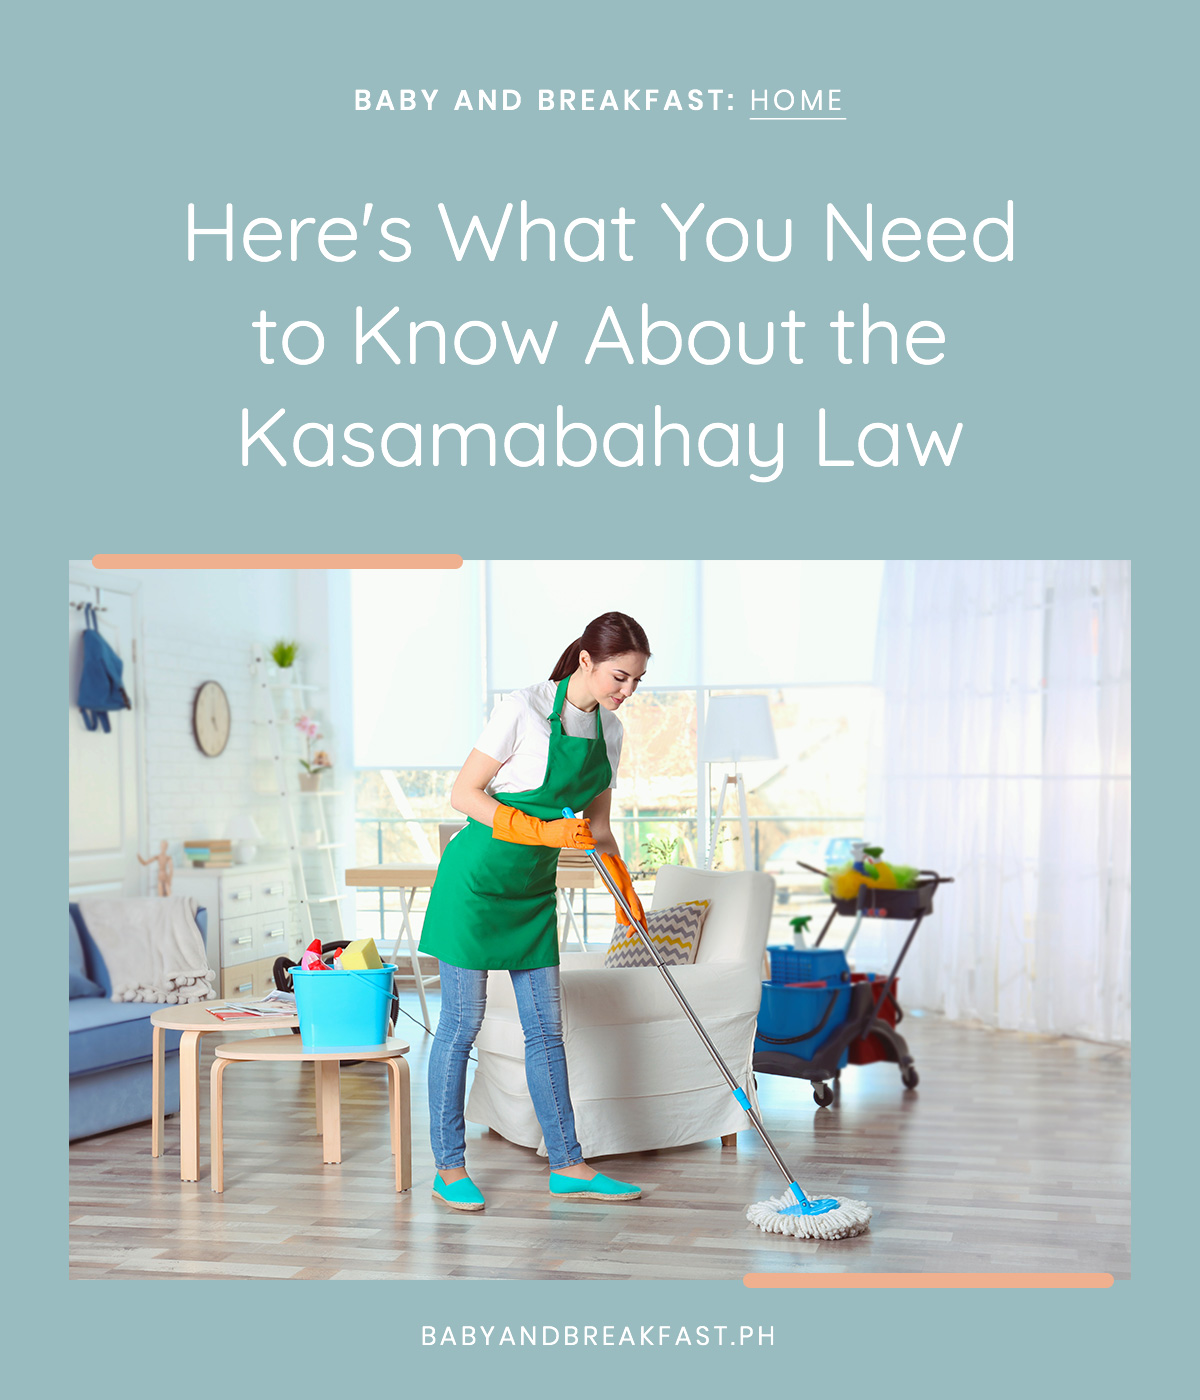 Baby and Breakfast: Home Here's What You Need to Know About the Kasambahay Law